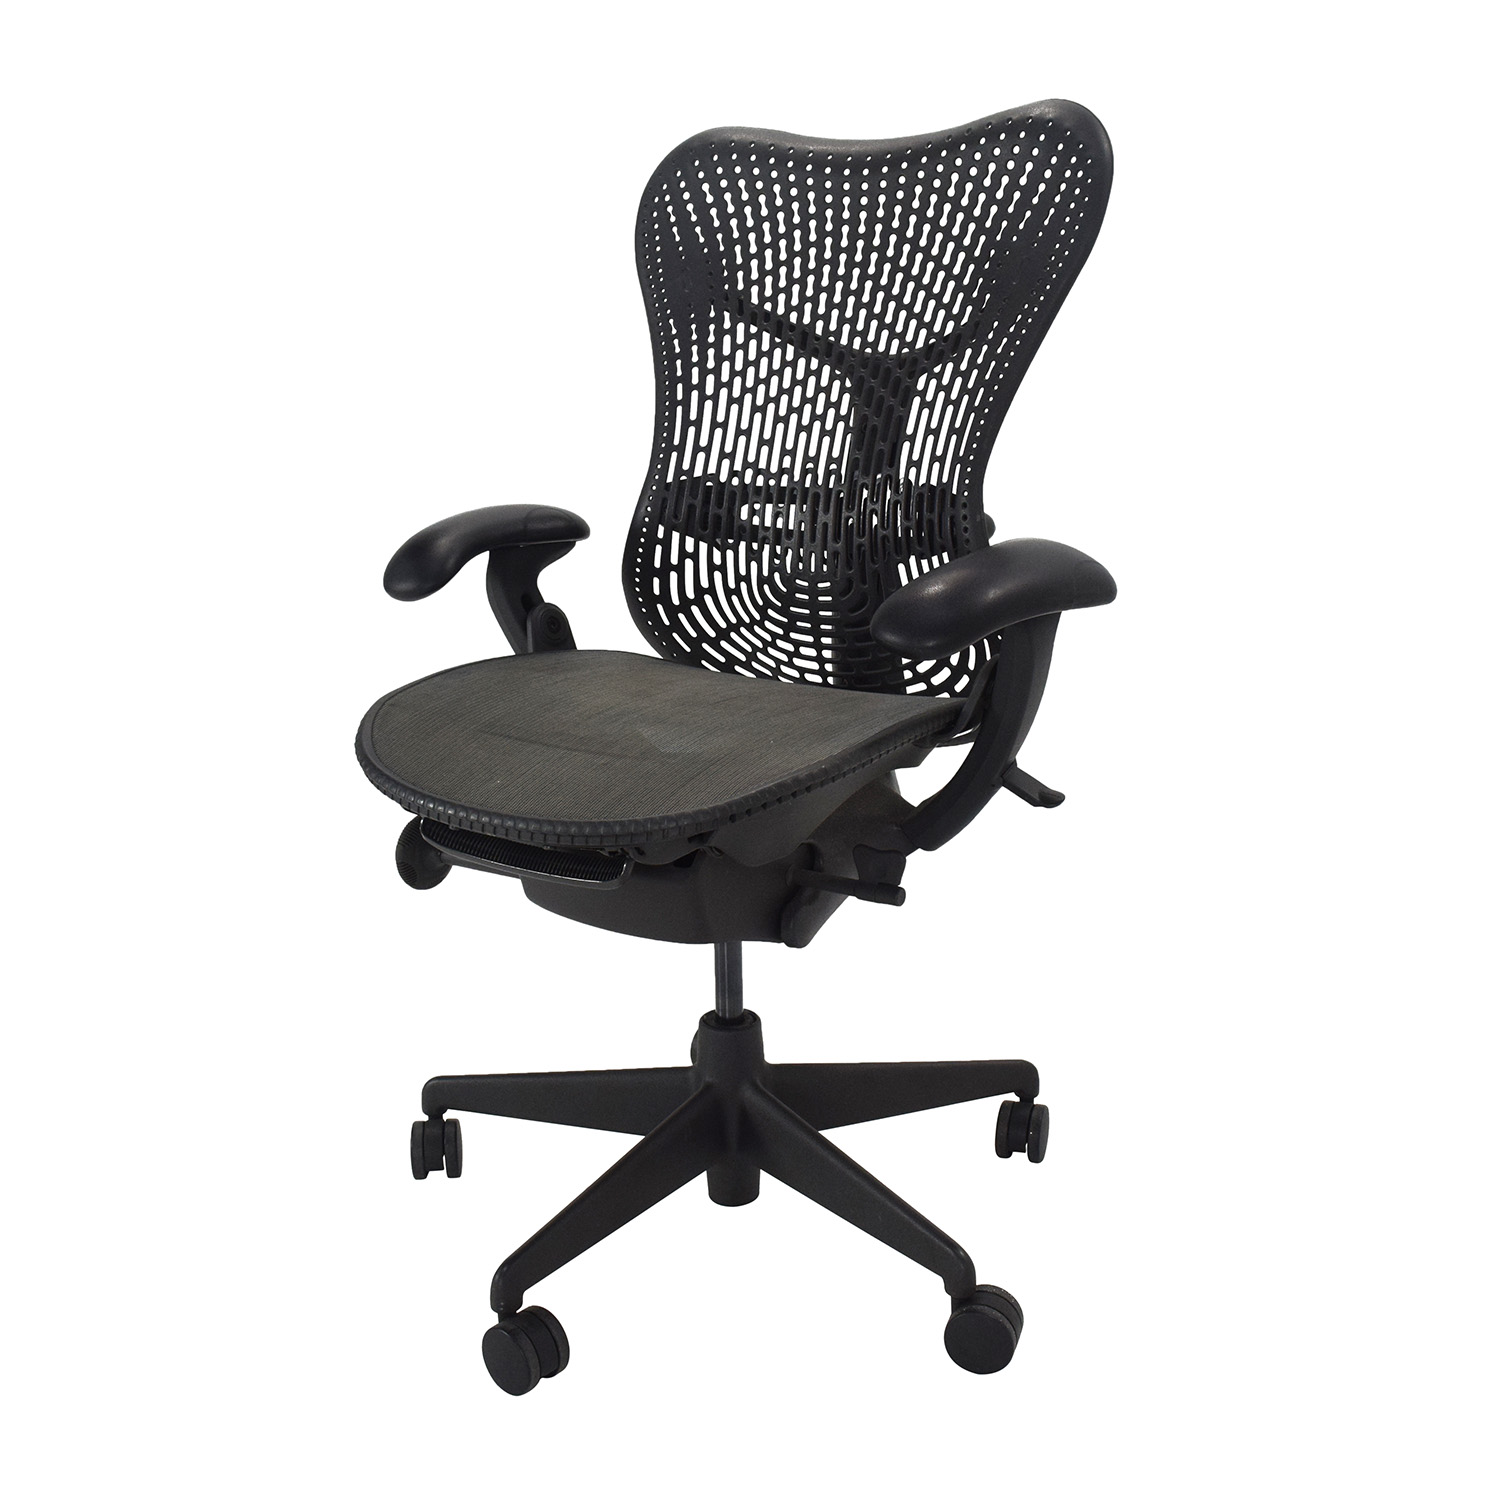 Ergonomic Office Chairs 86% off - eco ergonomic office chair / chairs